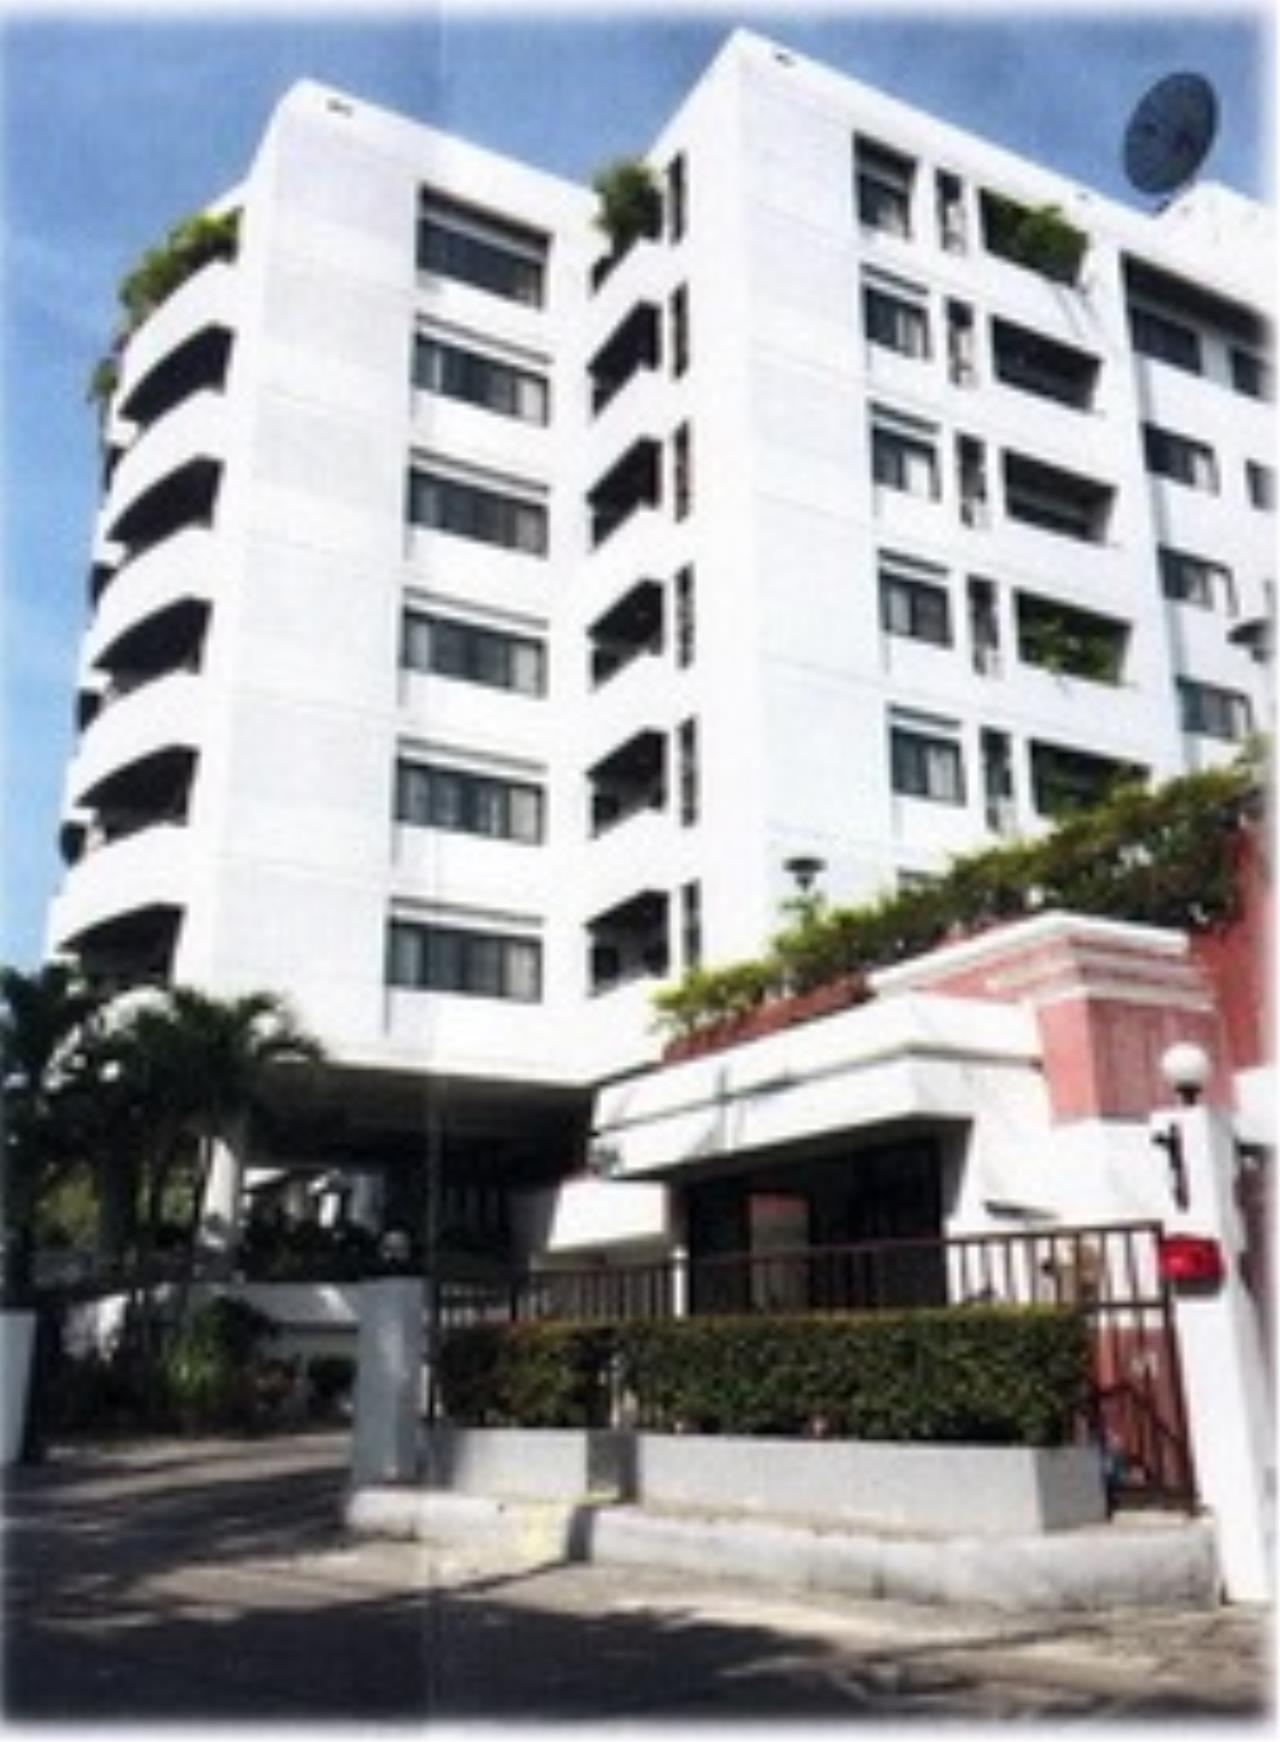 37562-Liang Garden for sale, on Nanglinchee road, 123 sq.m.